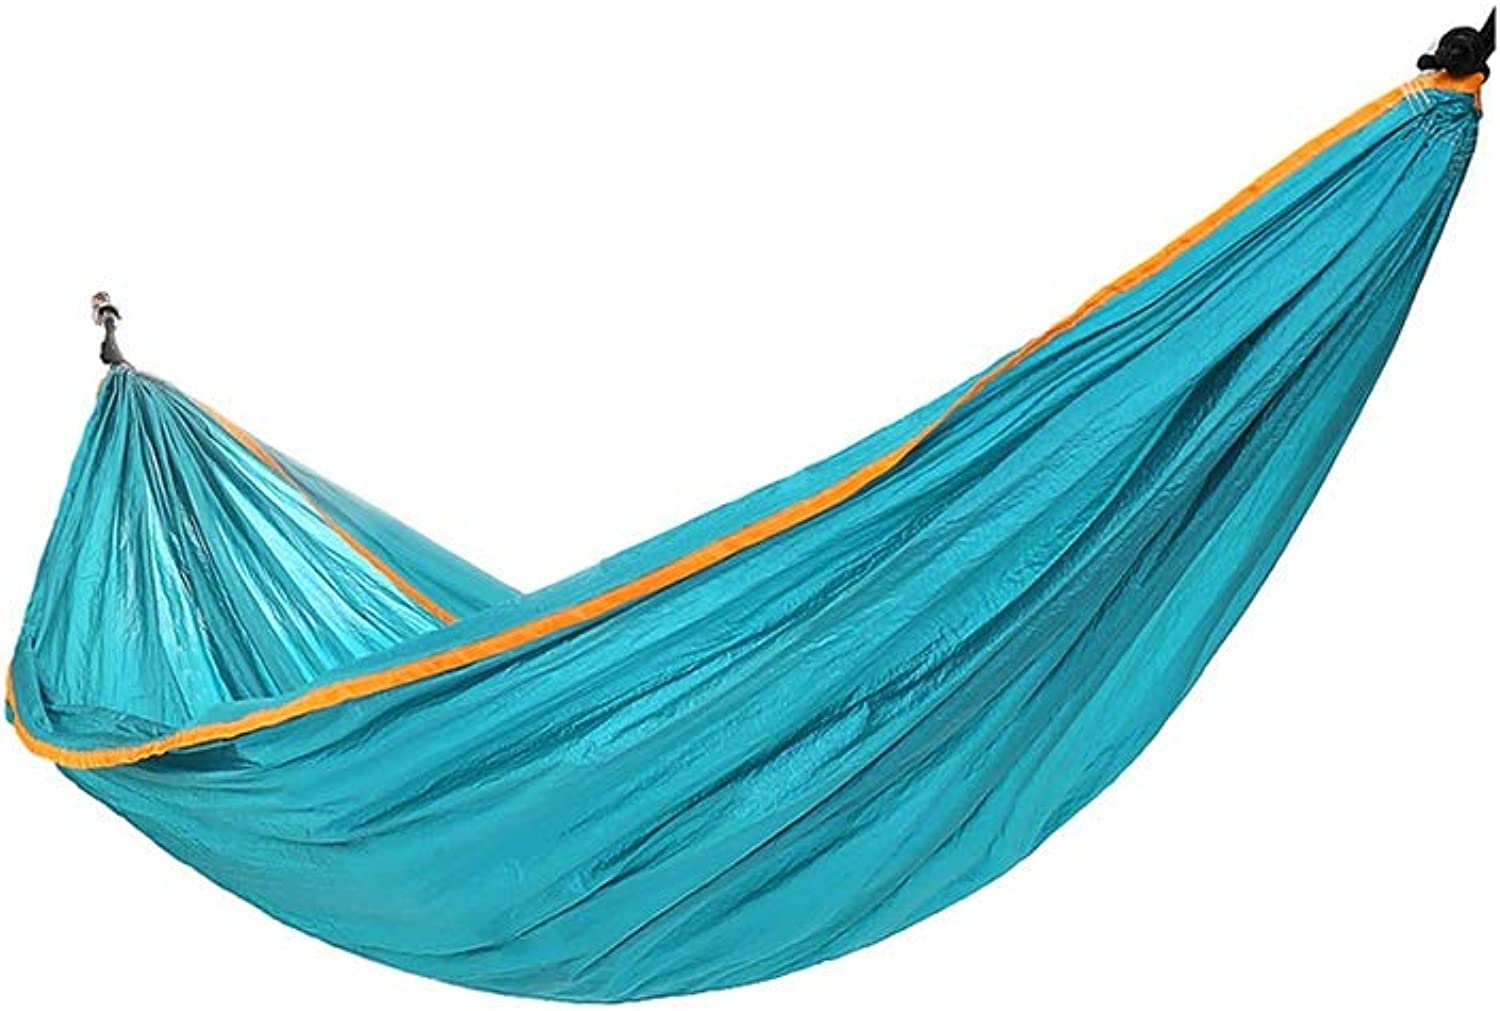 Hzpxsb Hammock - Multipurpose - Outdoor, Indoor, Travel, Beach, Garden, Camping - Swing Bed - Dormitory Swing - 260cmX140cm - Huse